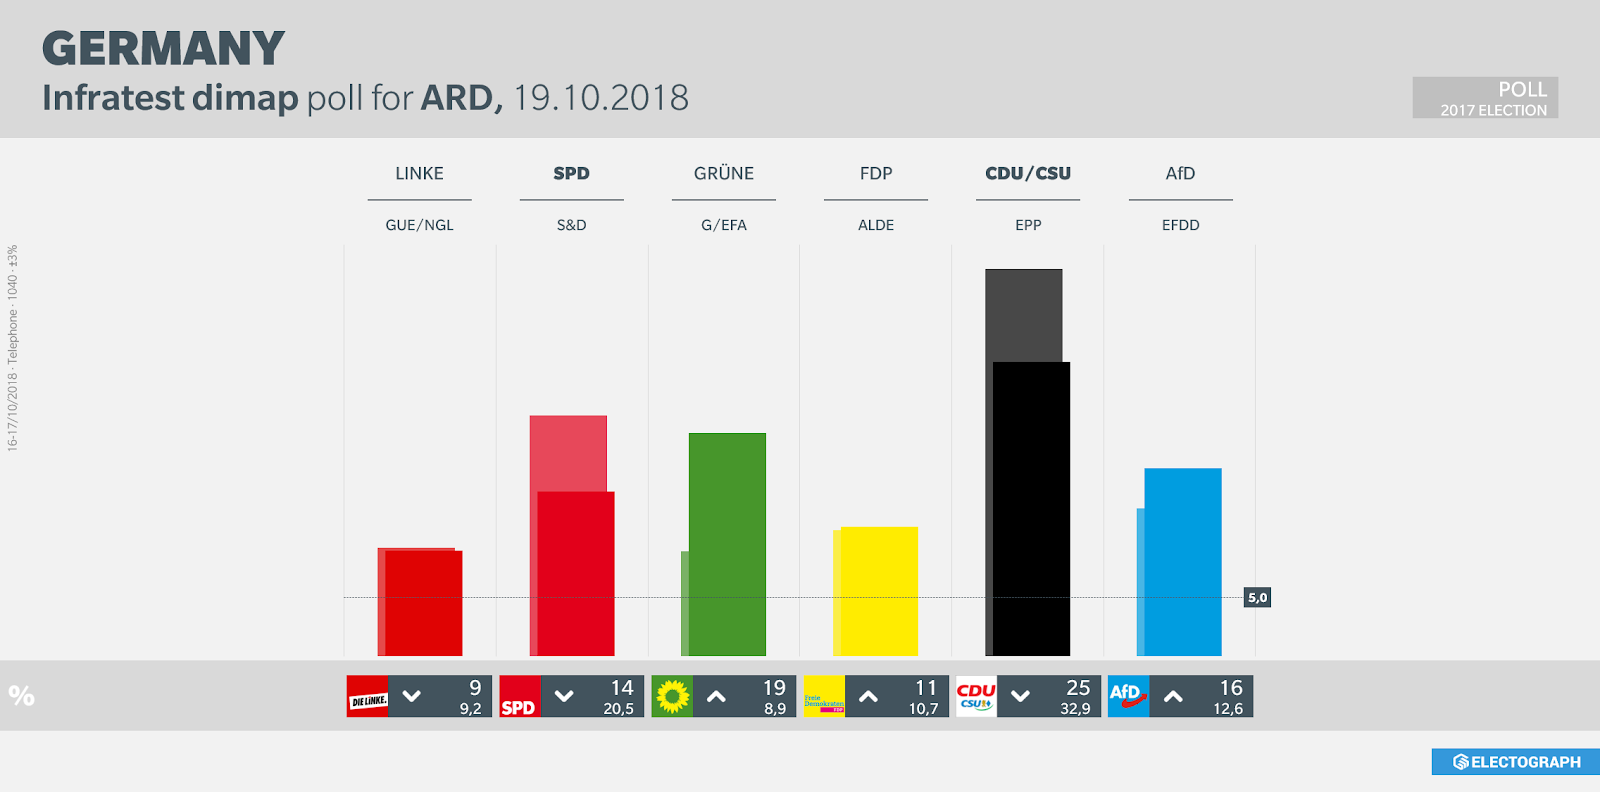 GERMANY: Infratest dimap poll chart for ARD, October 2018